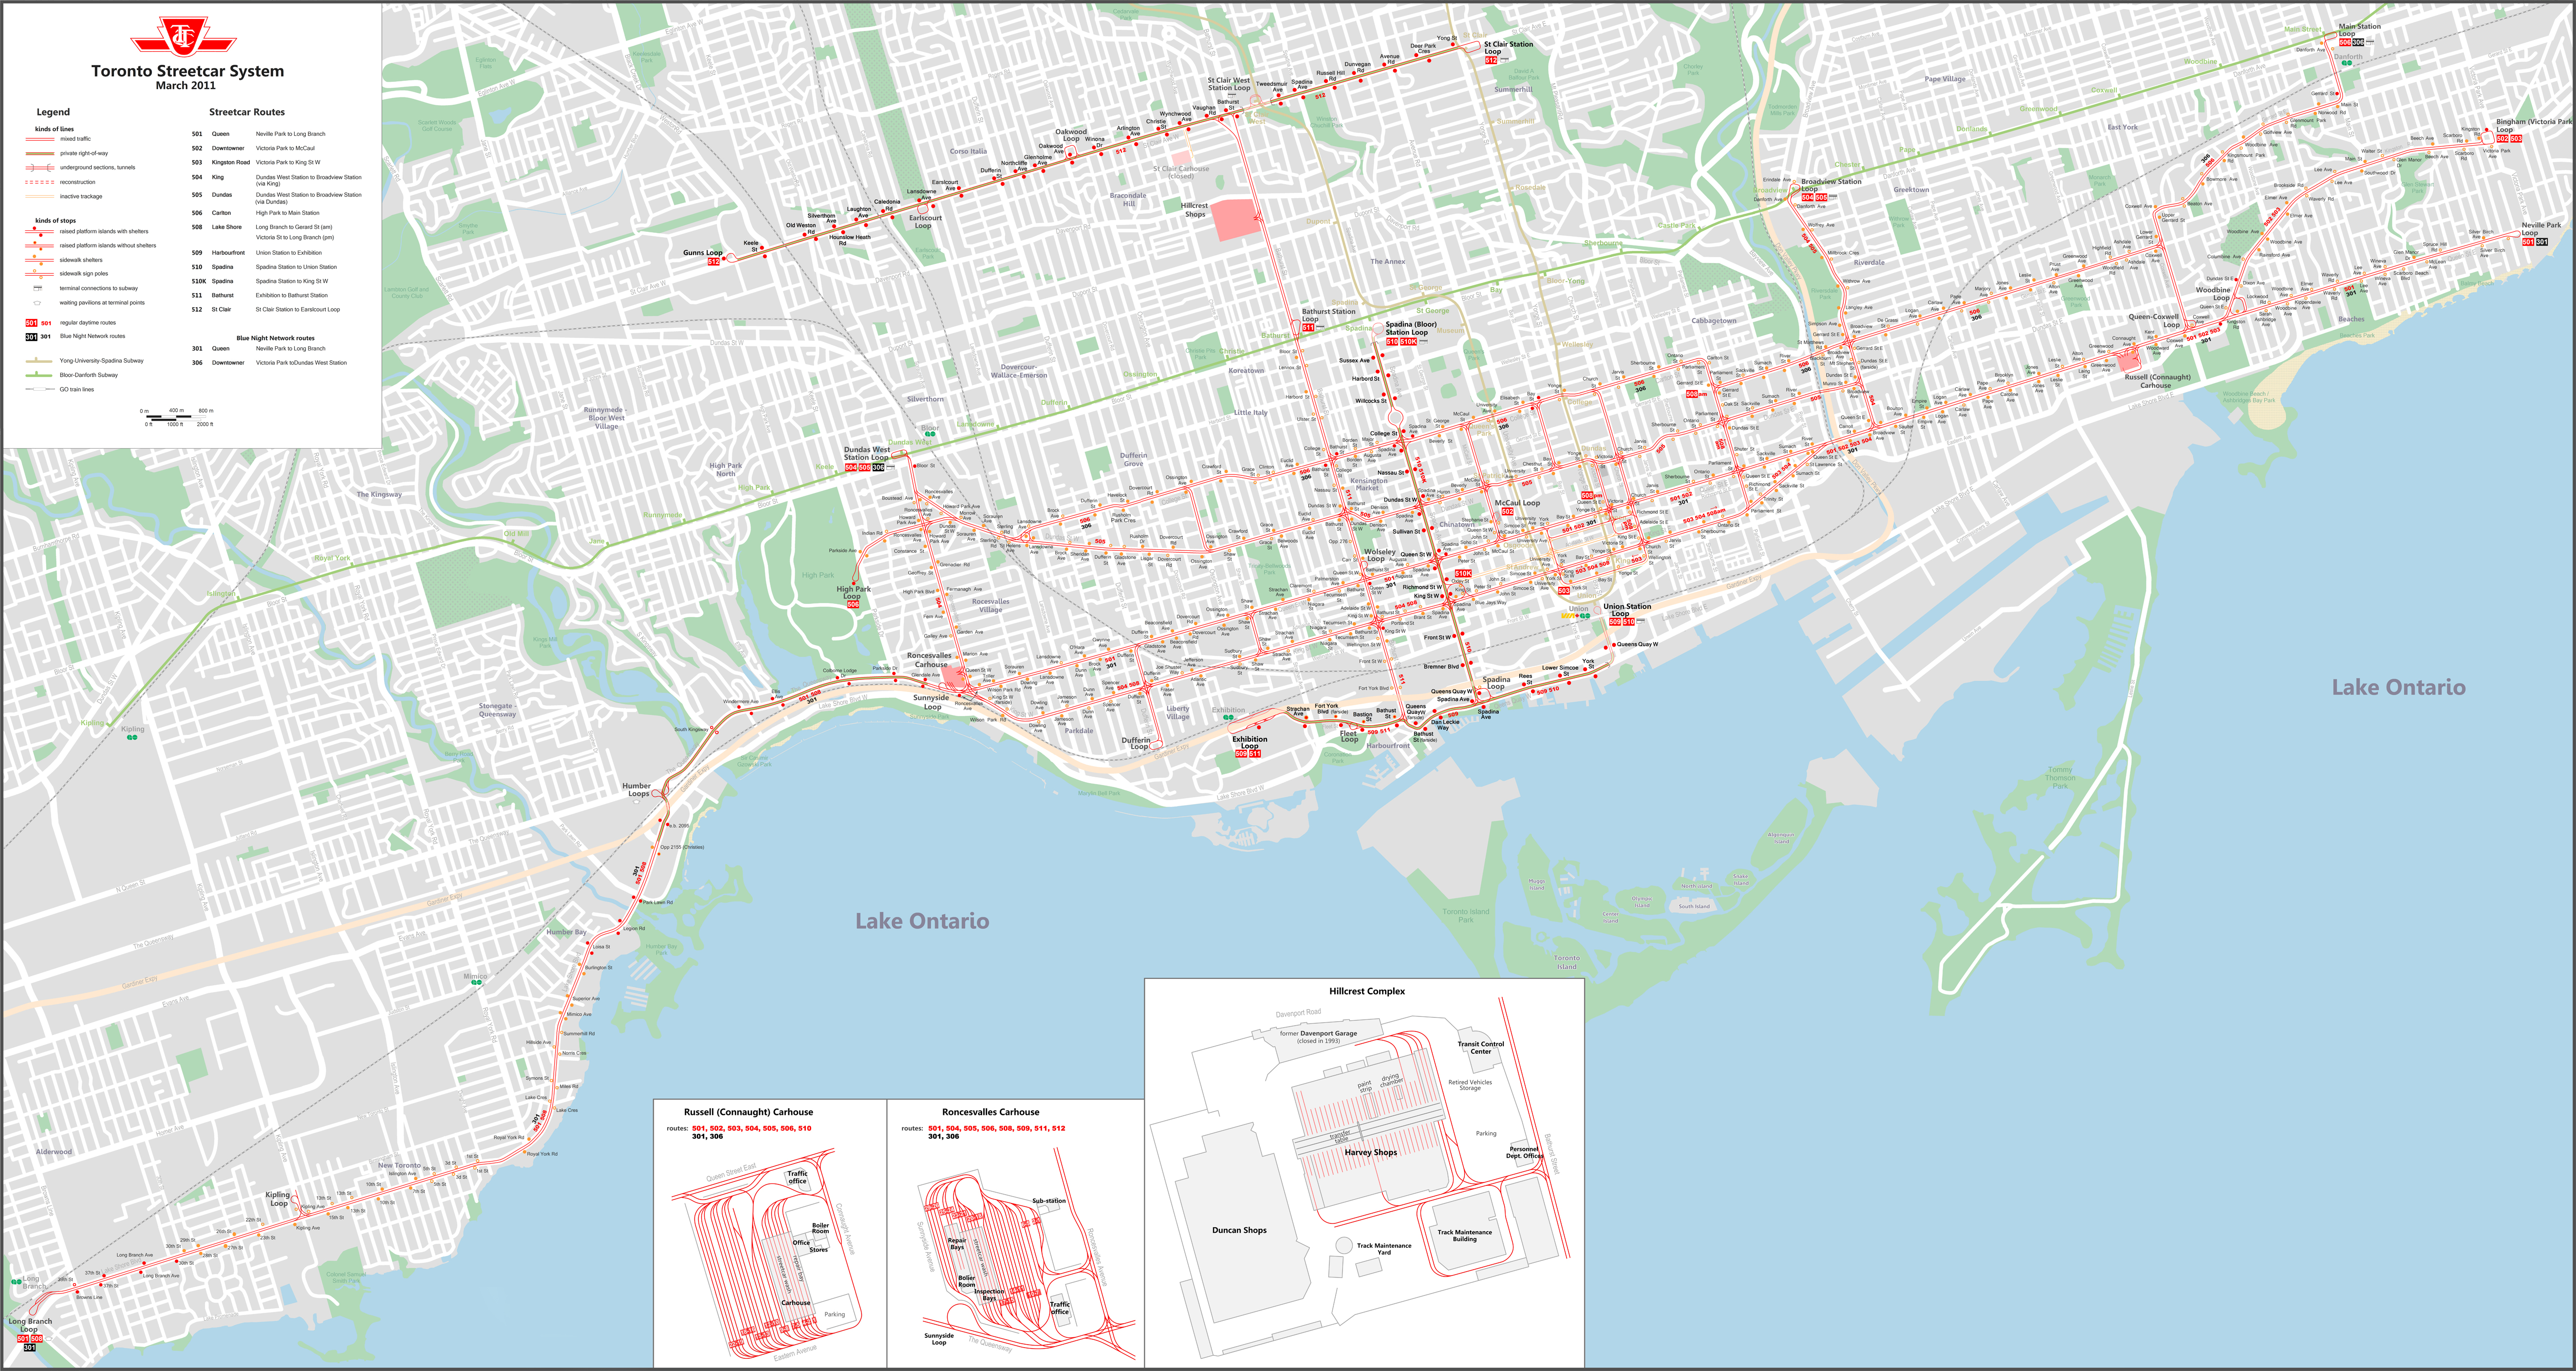 Ttc track diagrams transit toronto content streetcar track map march 2011 ccuart Choice Image